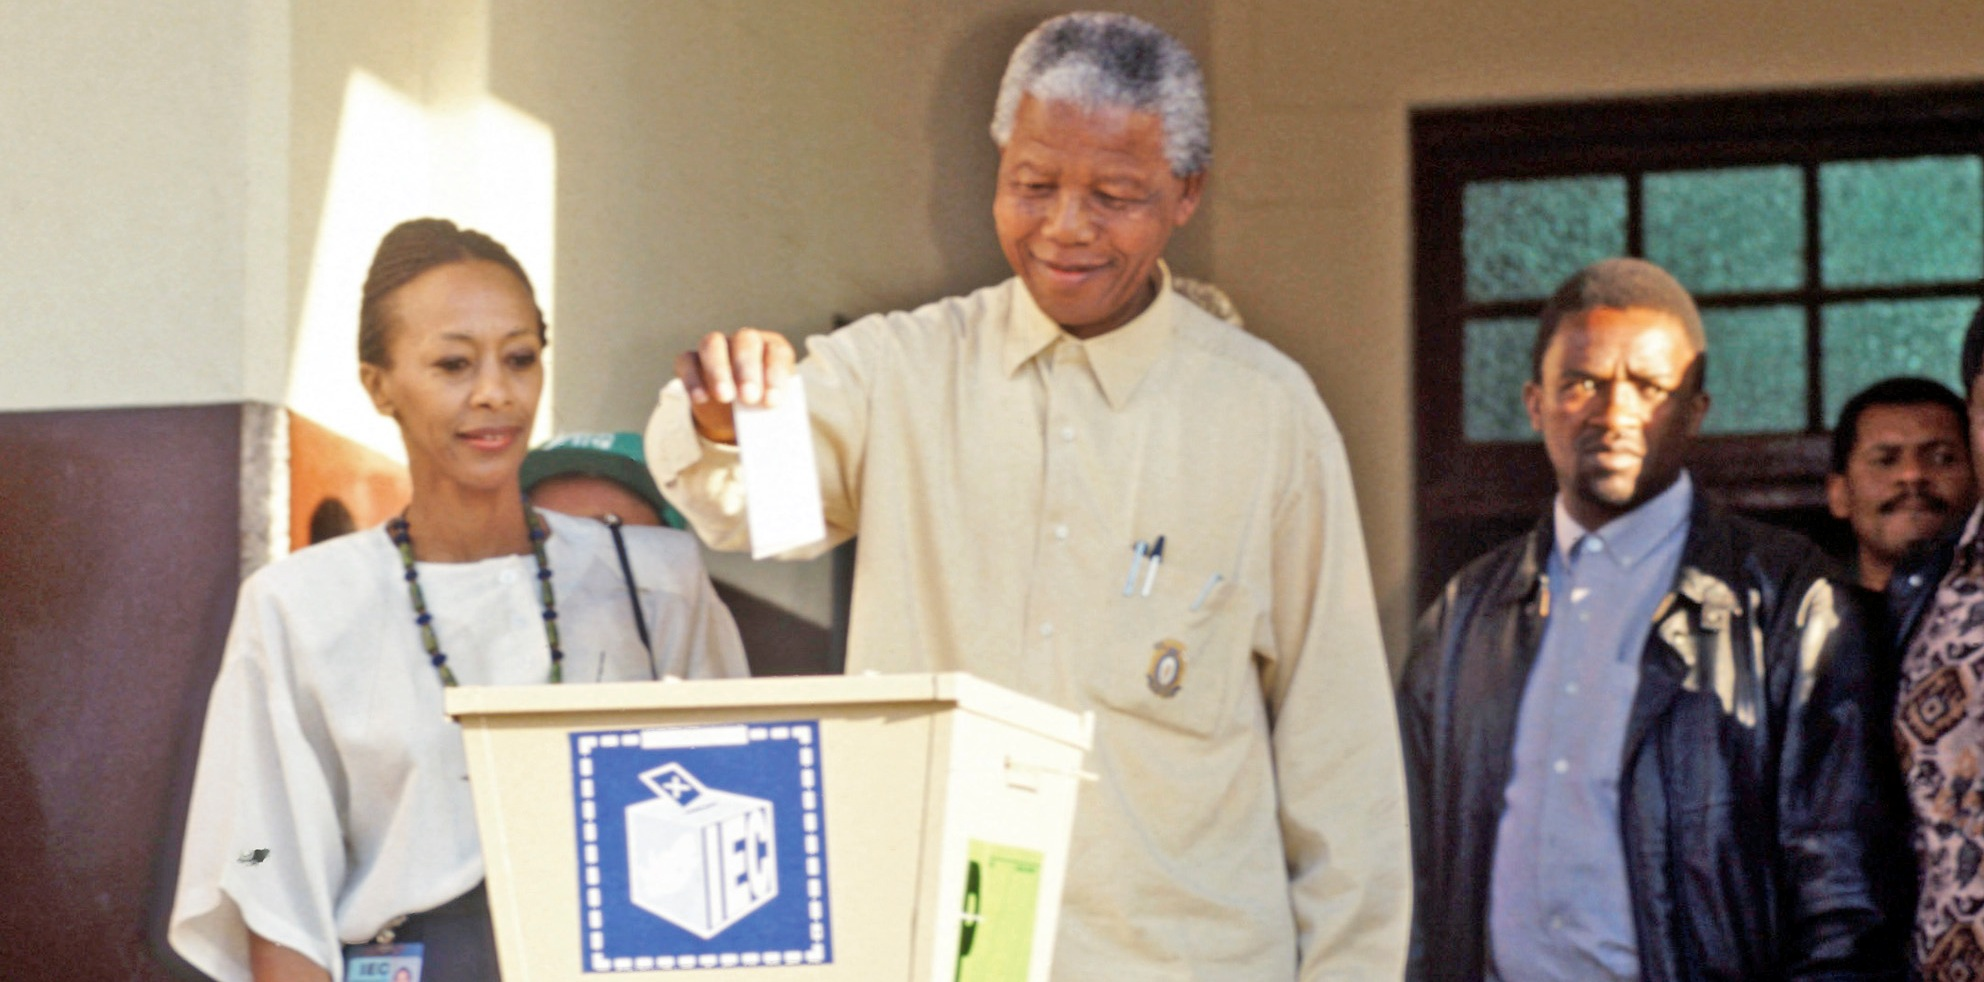 Nelson Mandela drops vote into ballot box